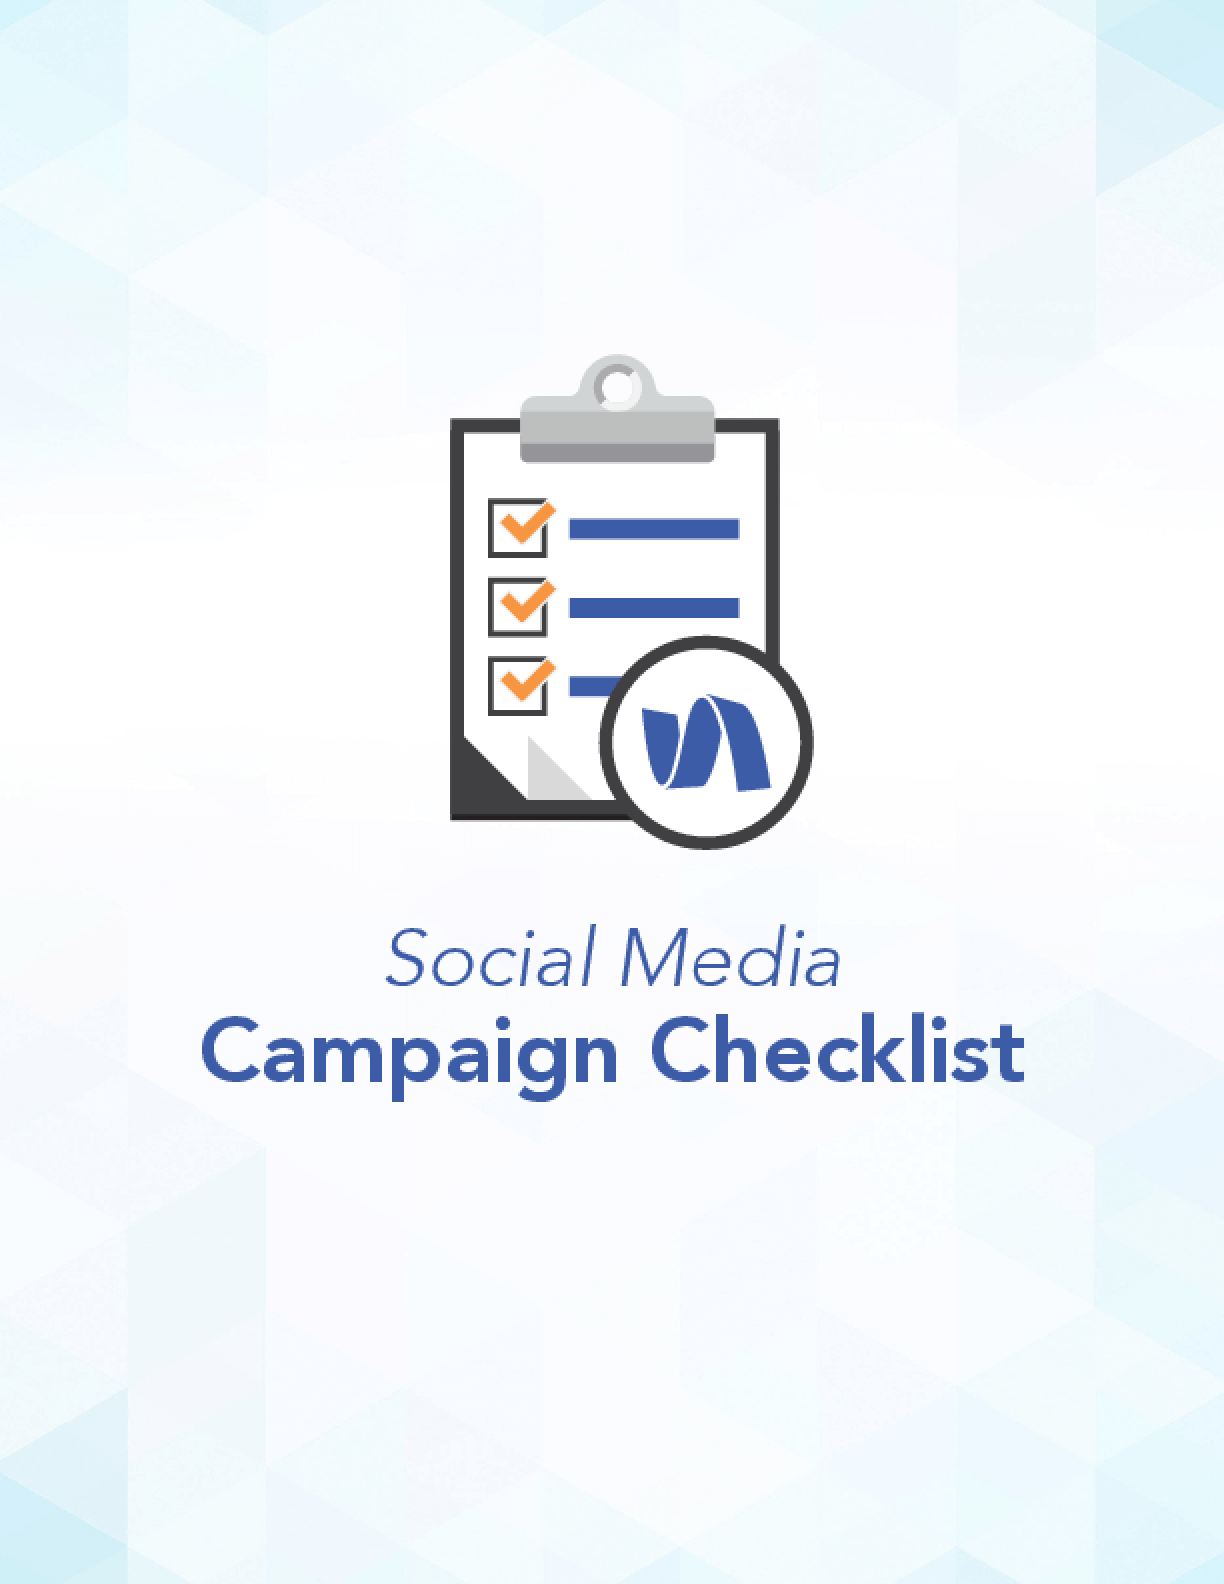 Social Media Campaign Checklist